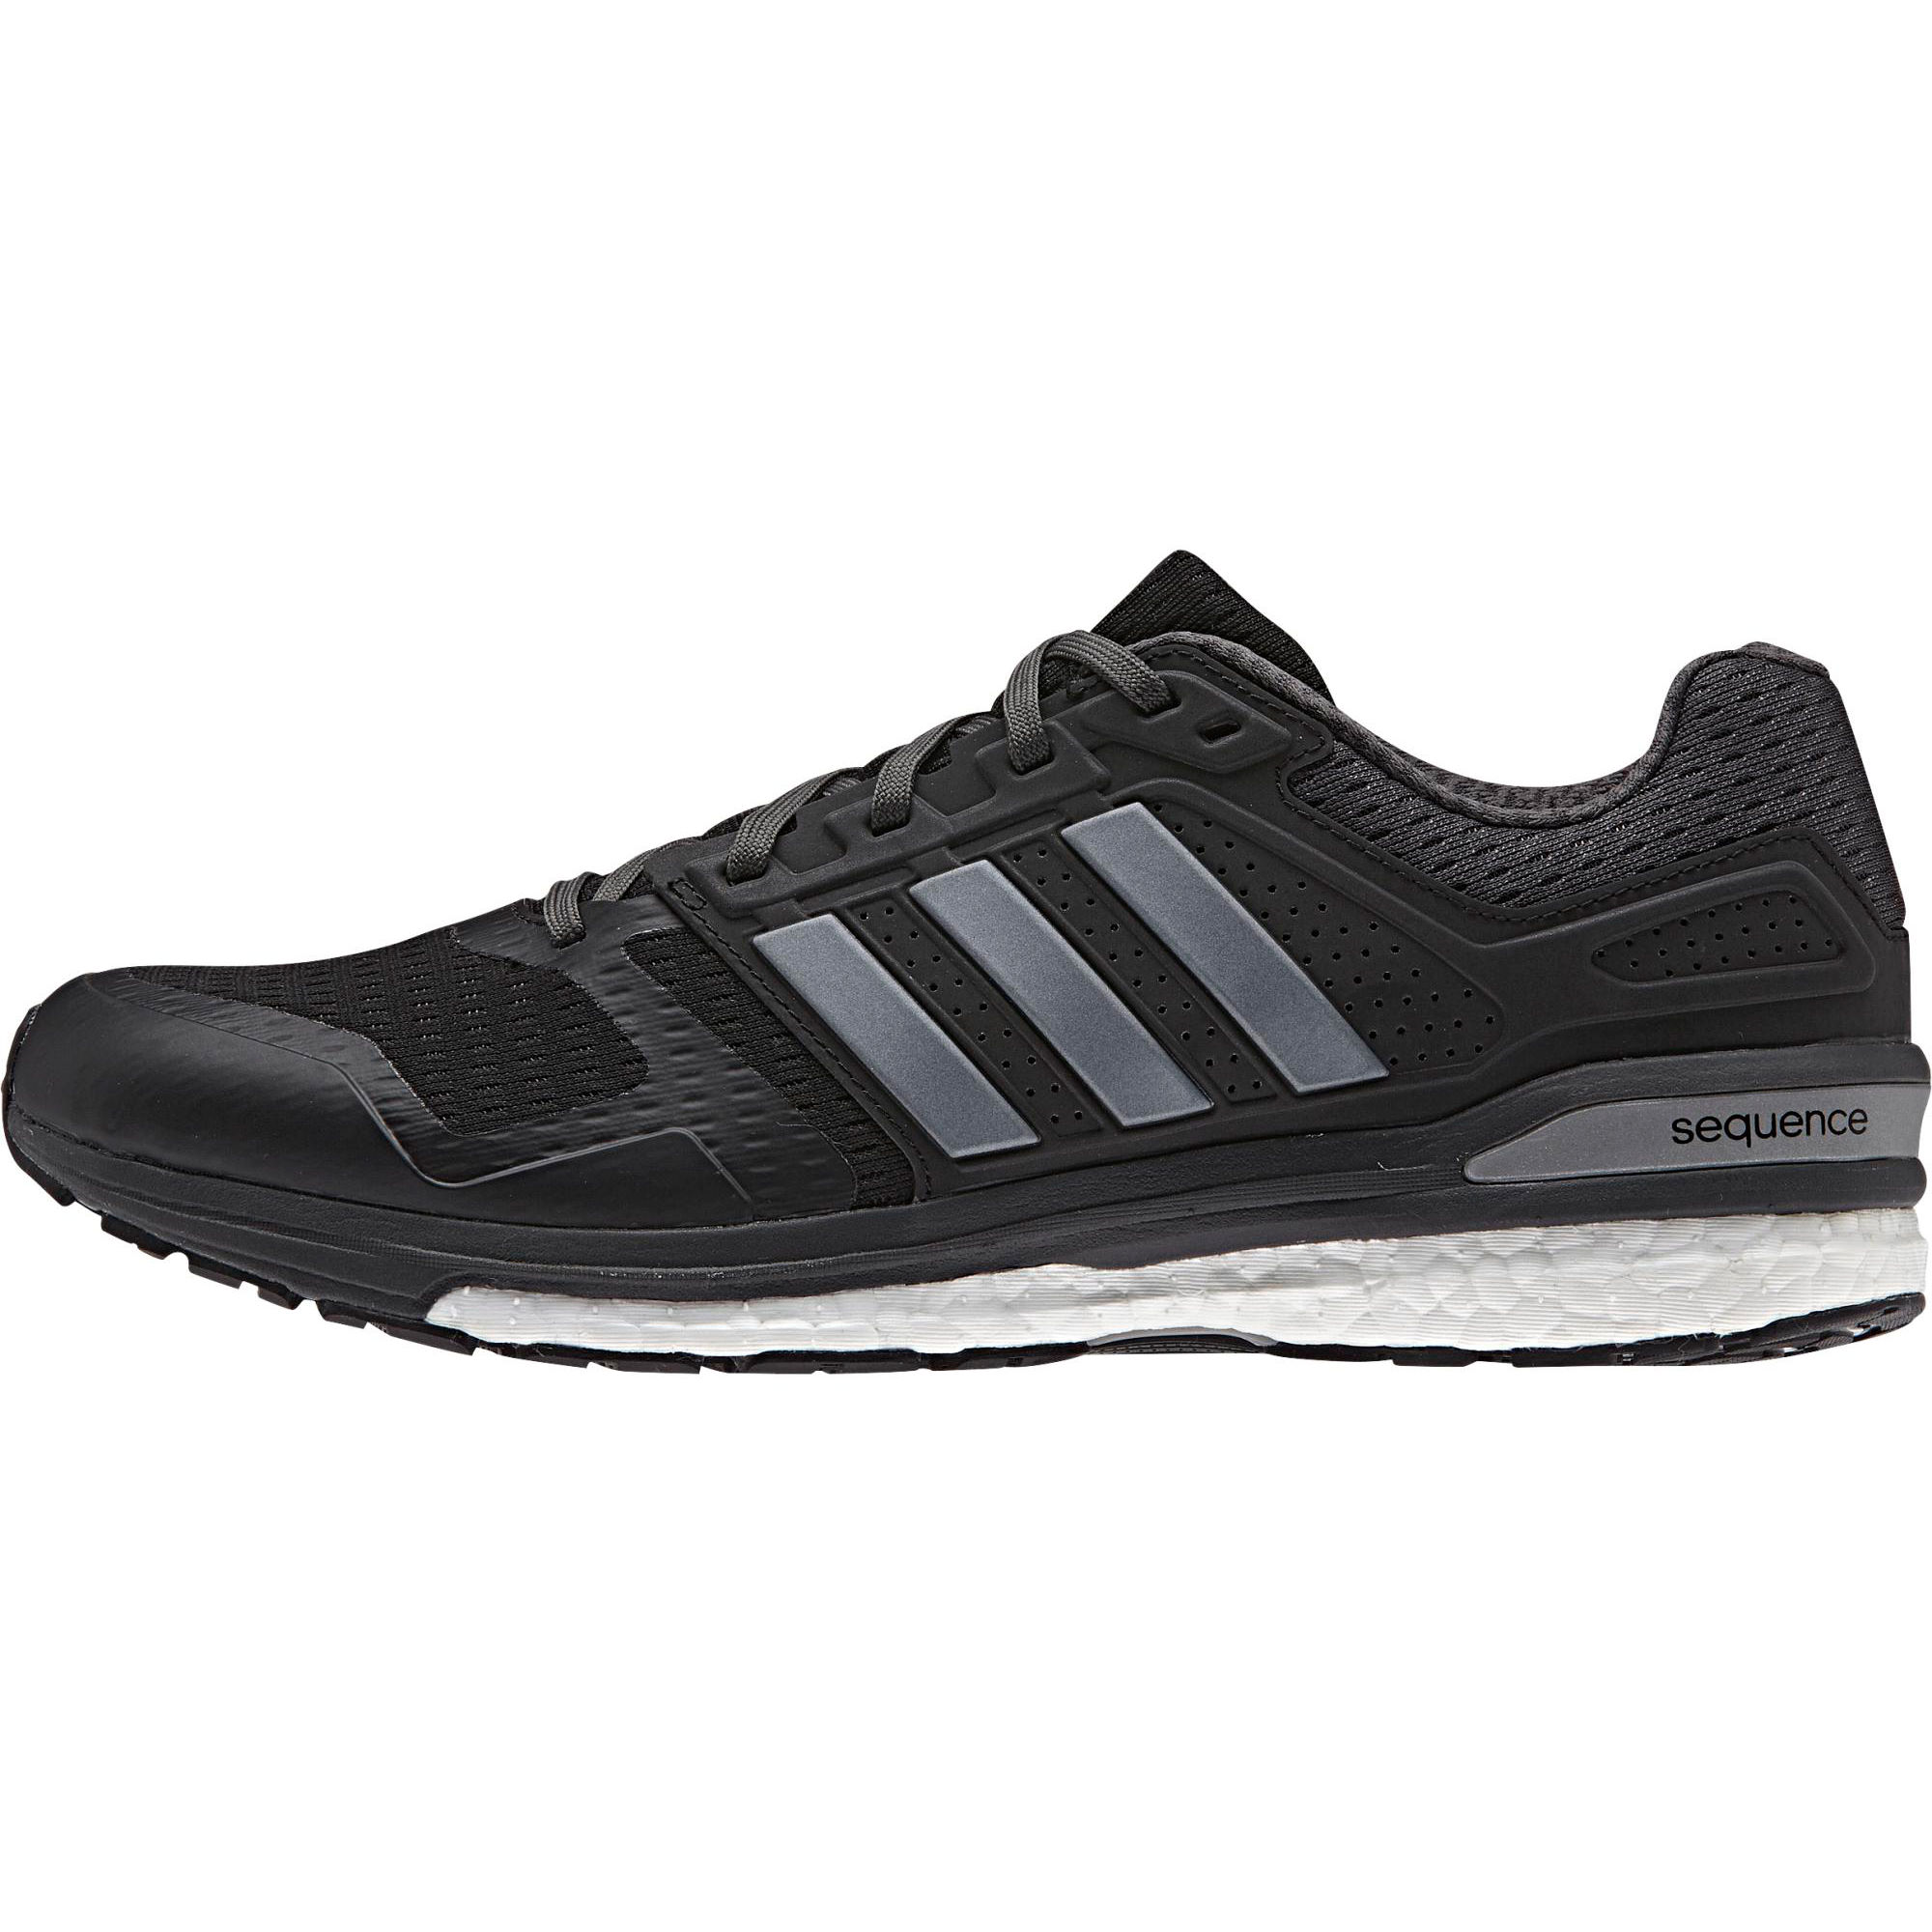 wiggle adidas supernova sequence boost 8 shoes ss16. Black Bedroom Furniture Sets. Home Design Ideas